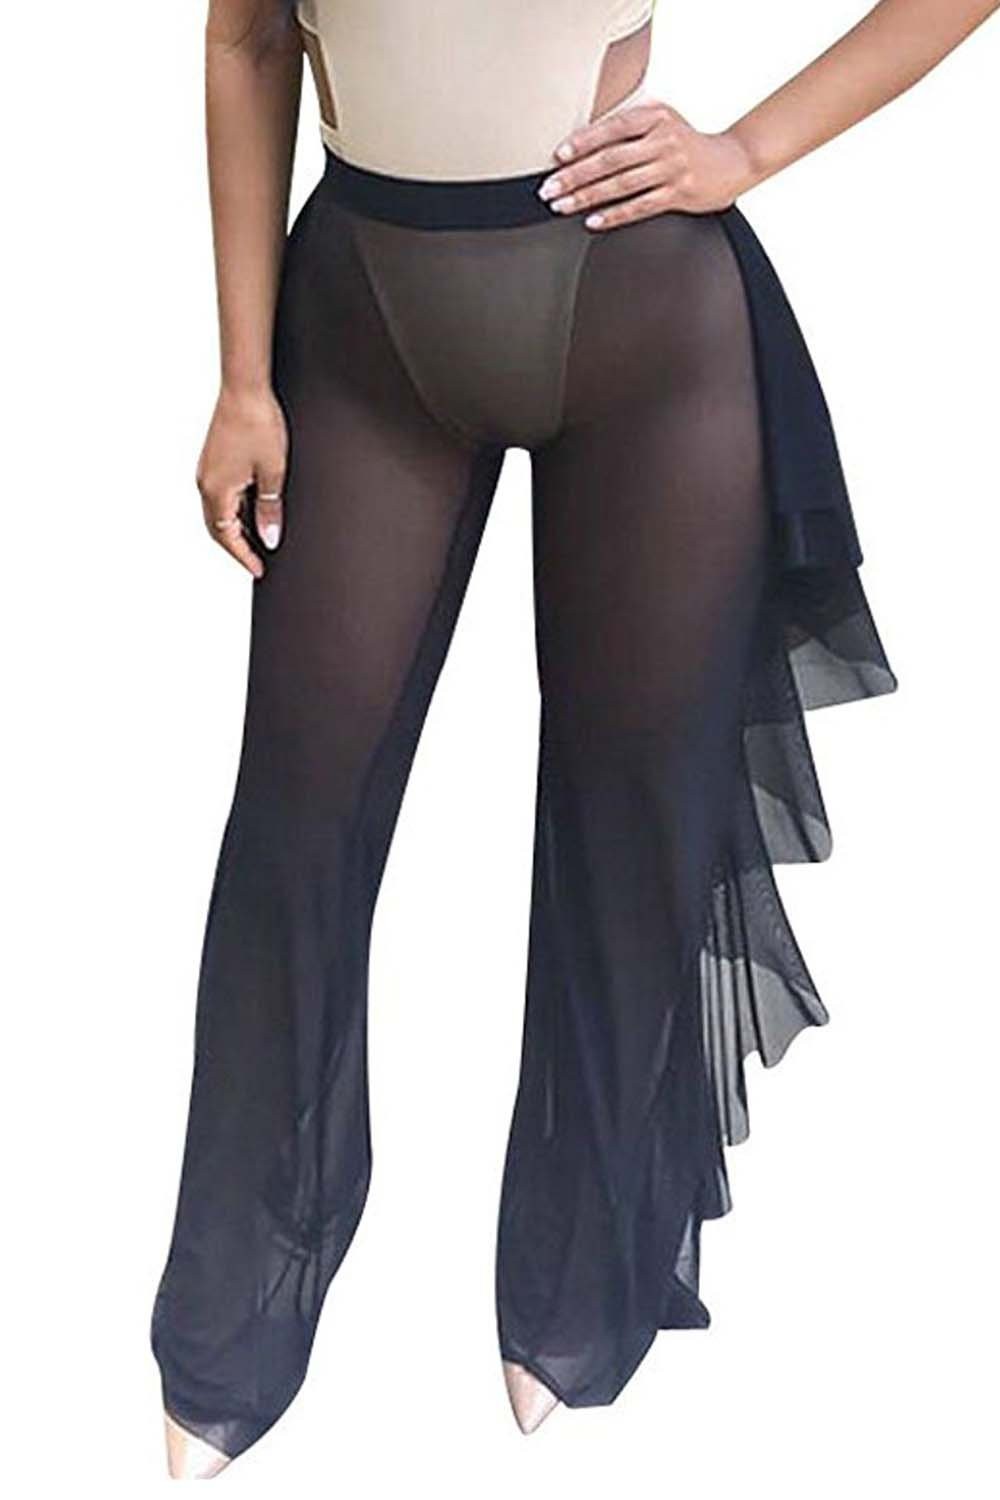 Women's See Through Sheer Mesh Ruffle Swimsuit Beach Cover up Pant (Tag S, Black)